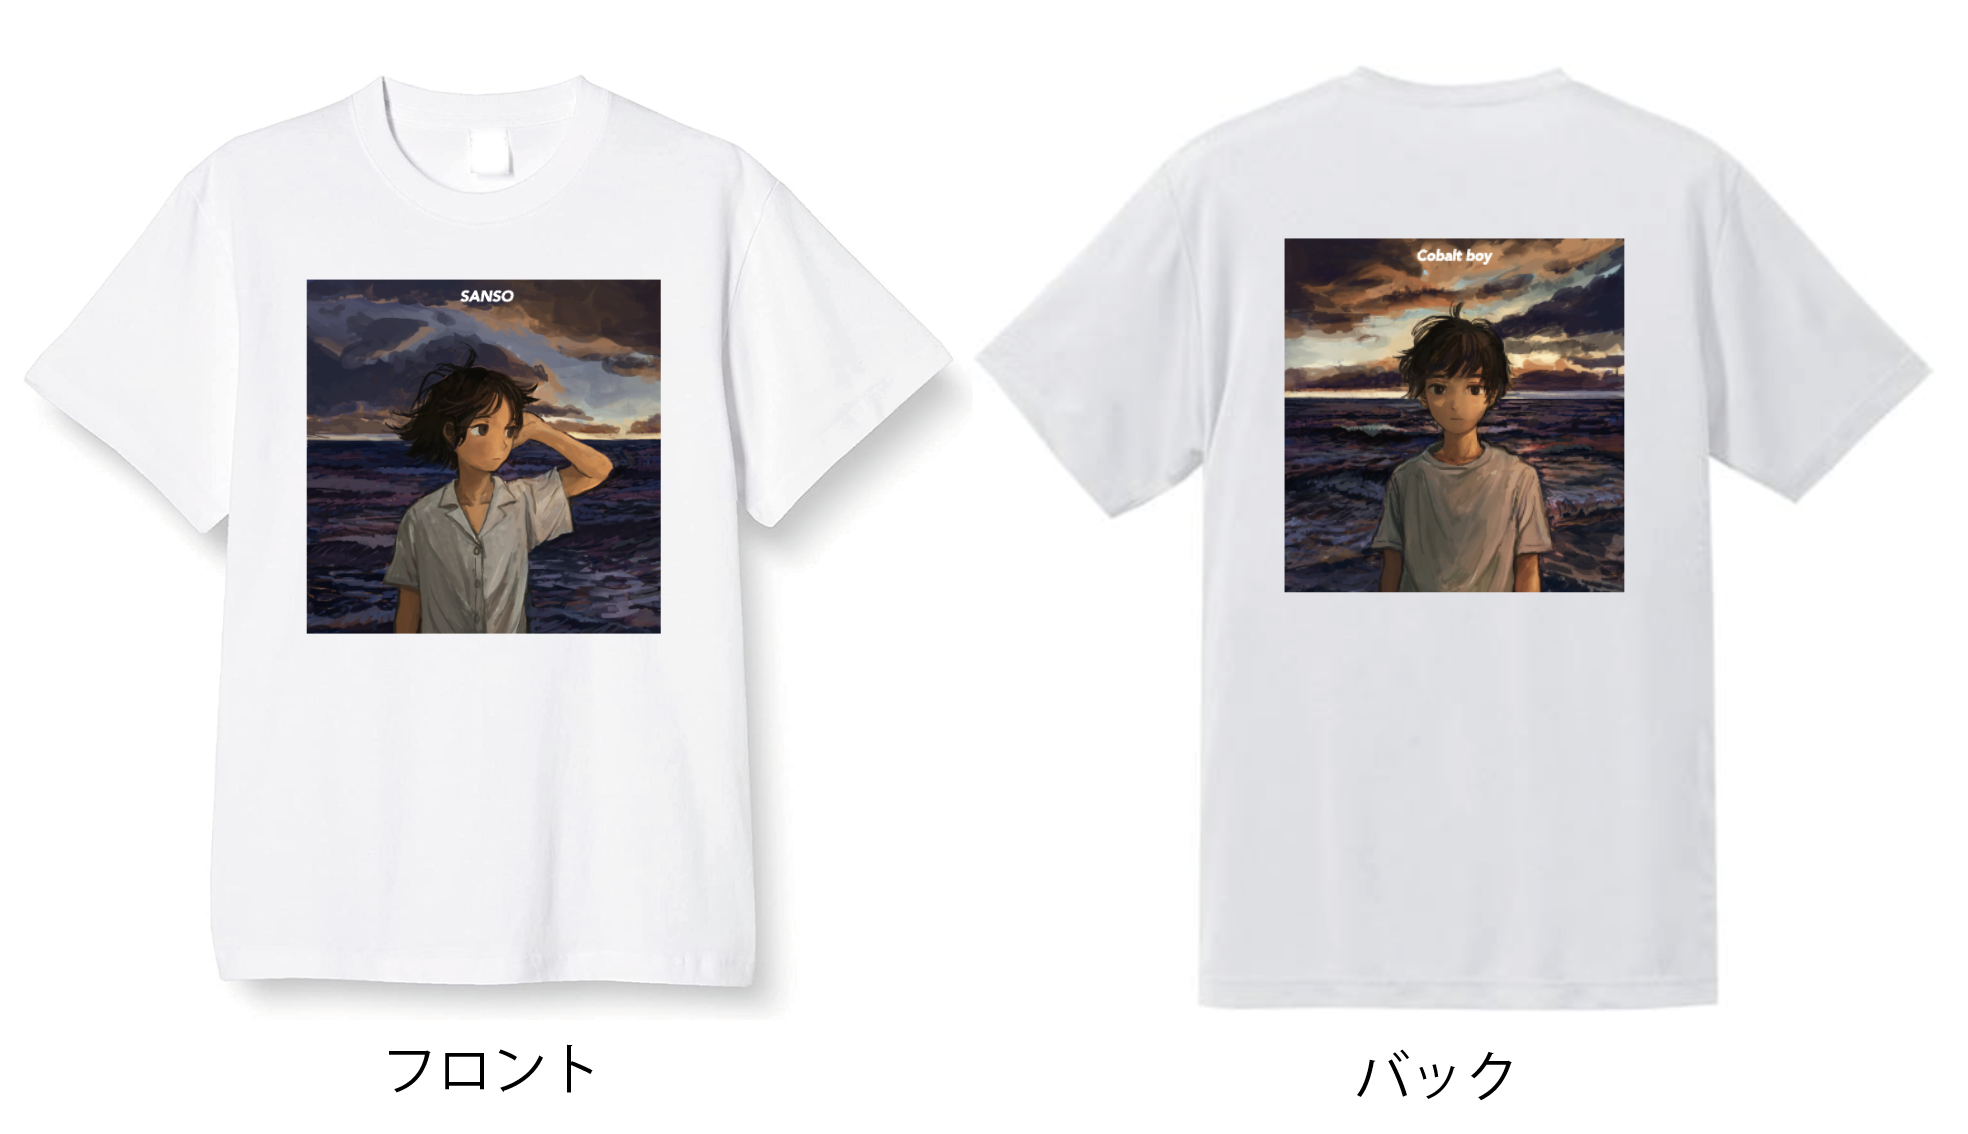 http://rose-records.jp/files/20210908114039.png